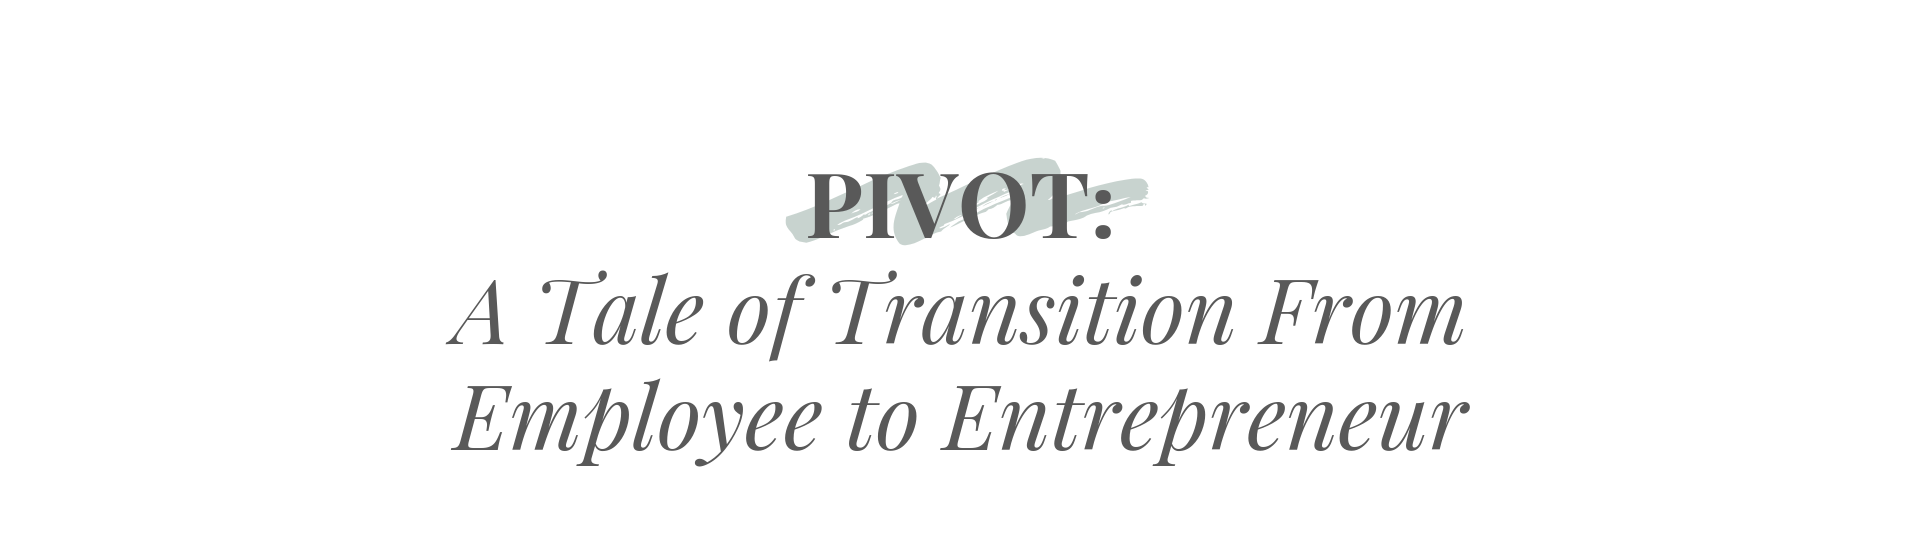 PIVOT: A Tale of Transition From Employee to Entrepreneur by Christine Barnes